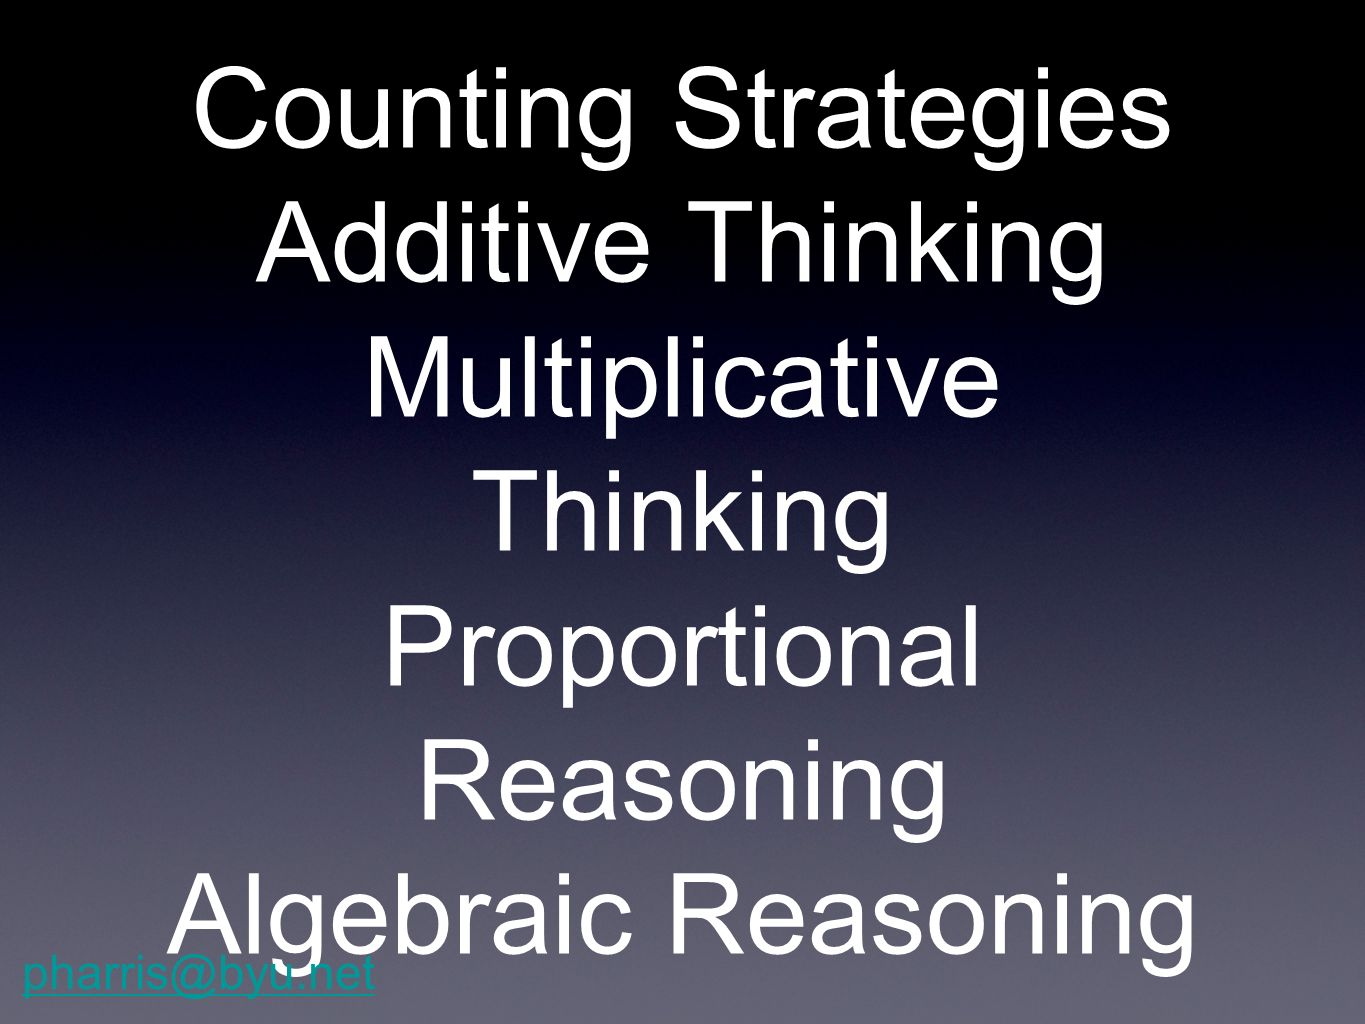 Counting Strategies Additive Thinking Multiplicative Thinking Proportional Reasoning Algebraic Reasoning